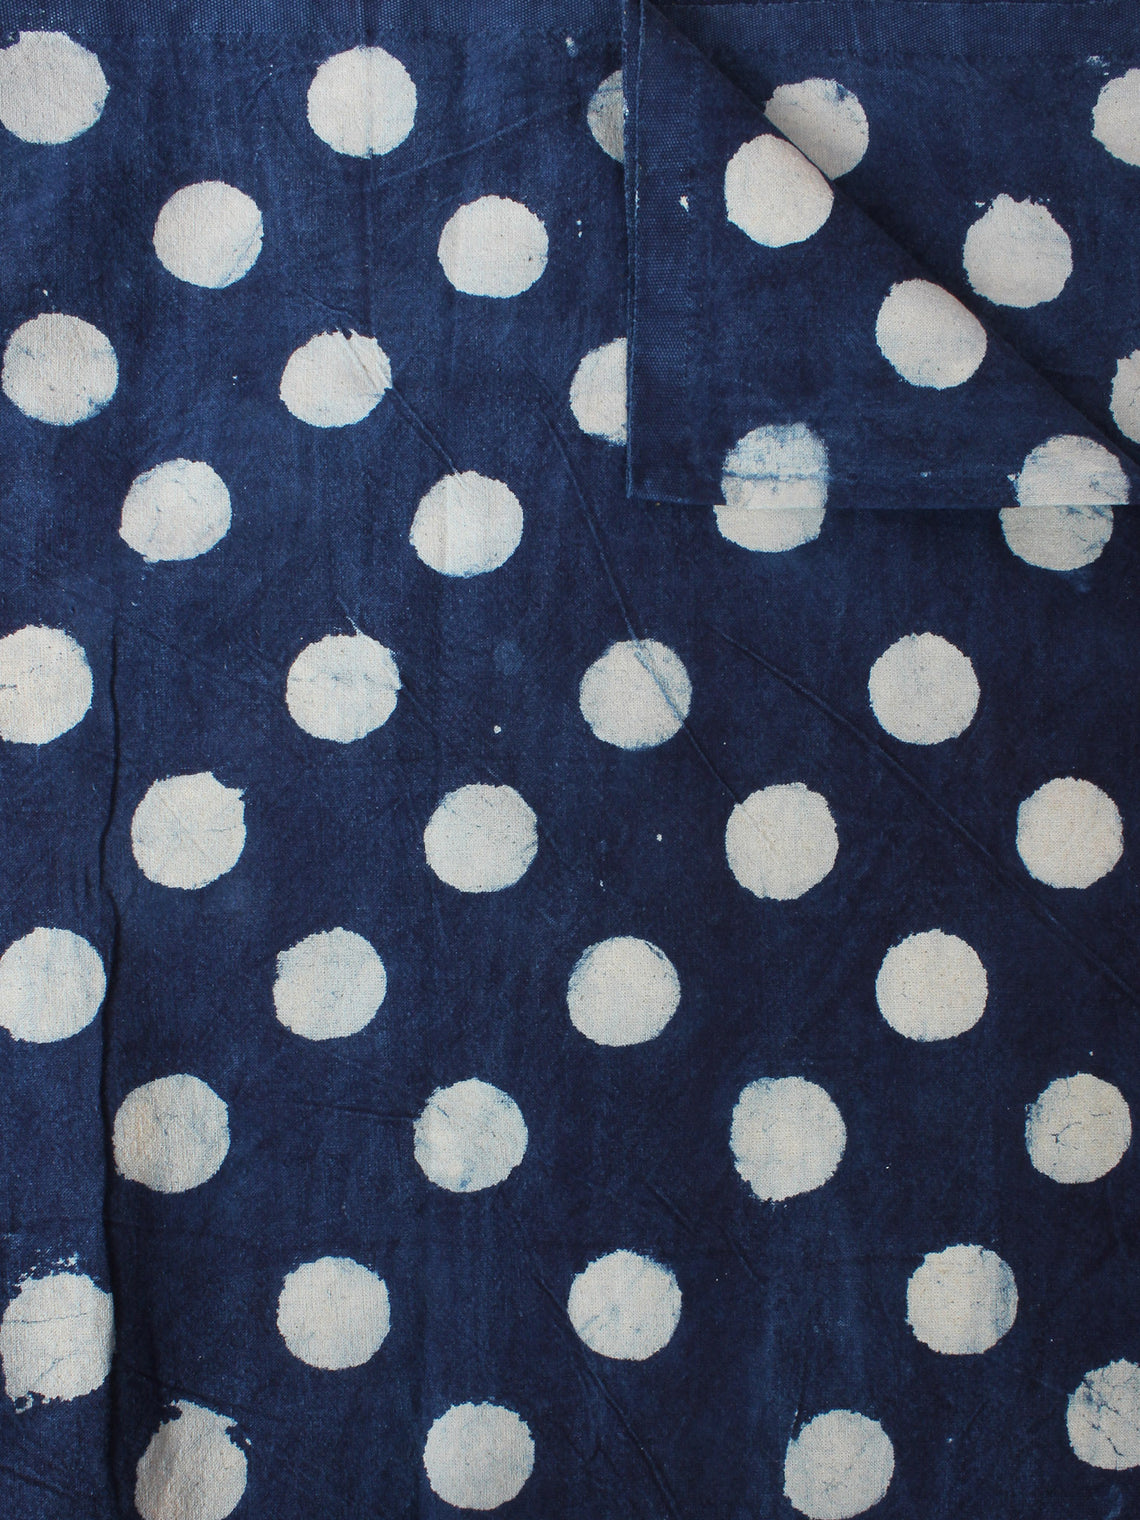 Indigo White Hand Block Printed Cotton Cambric Fabric Per Meter - F0916405